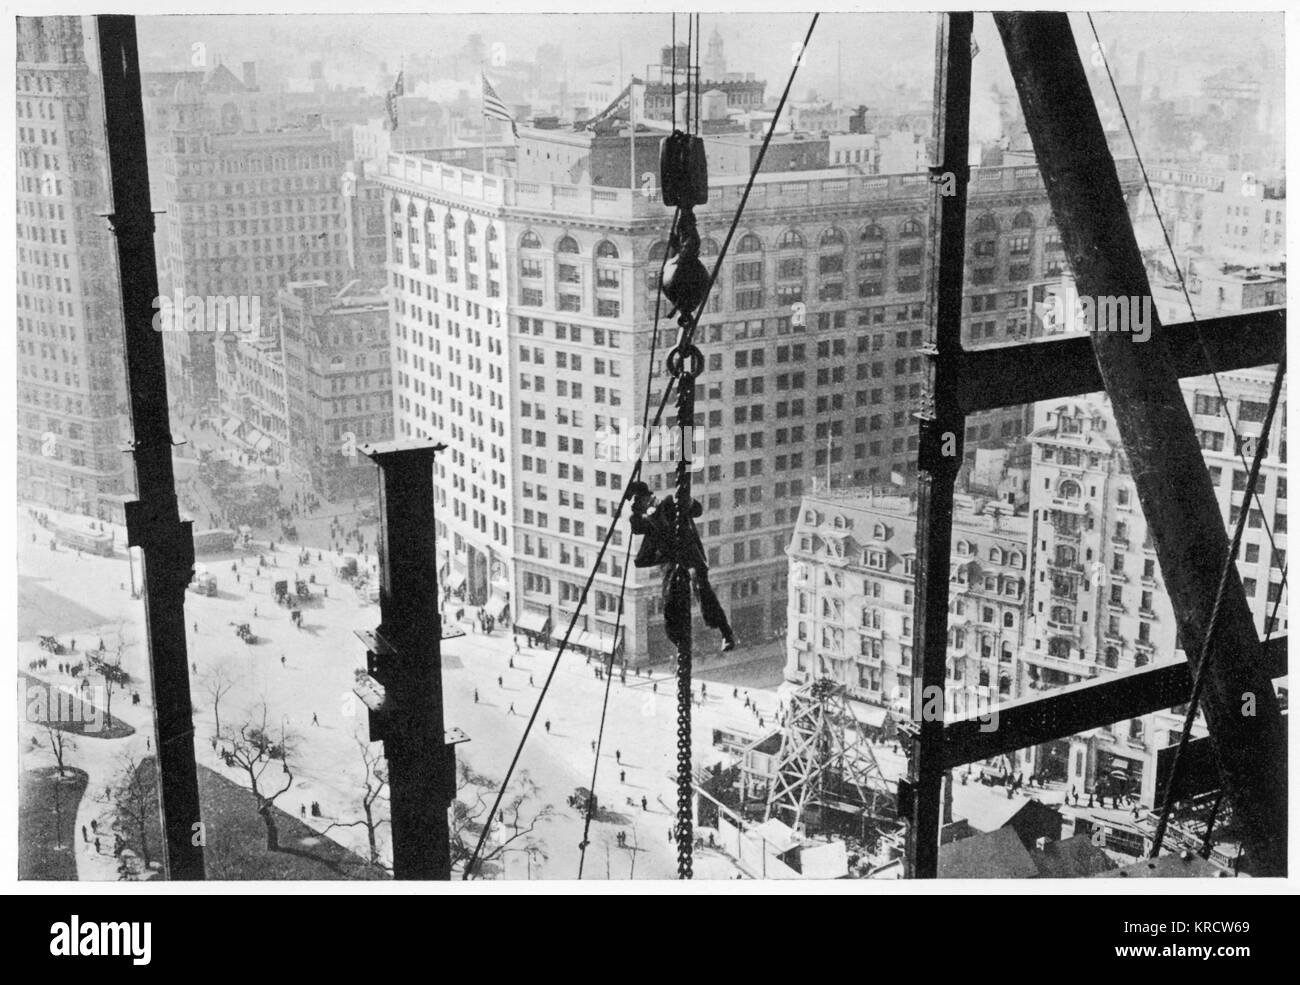 A man hangs precariously from a line during the construction of a skyscraper in New York. Date: Circa 1900 - Stock Image